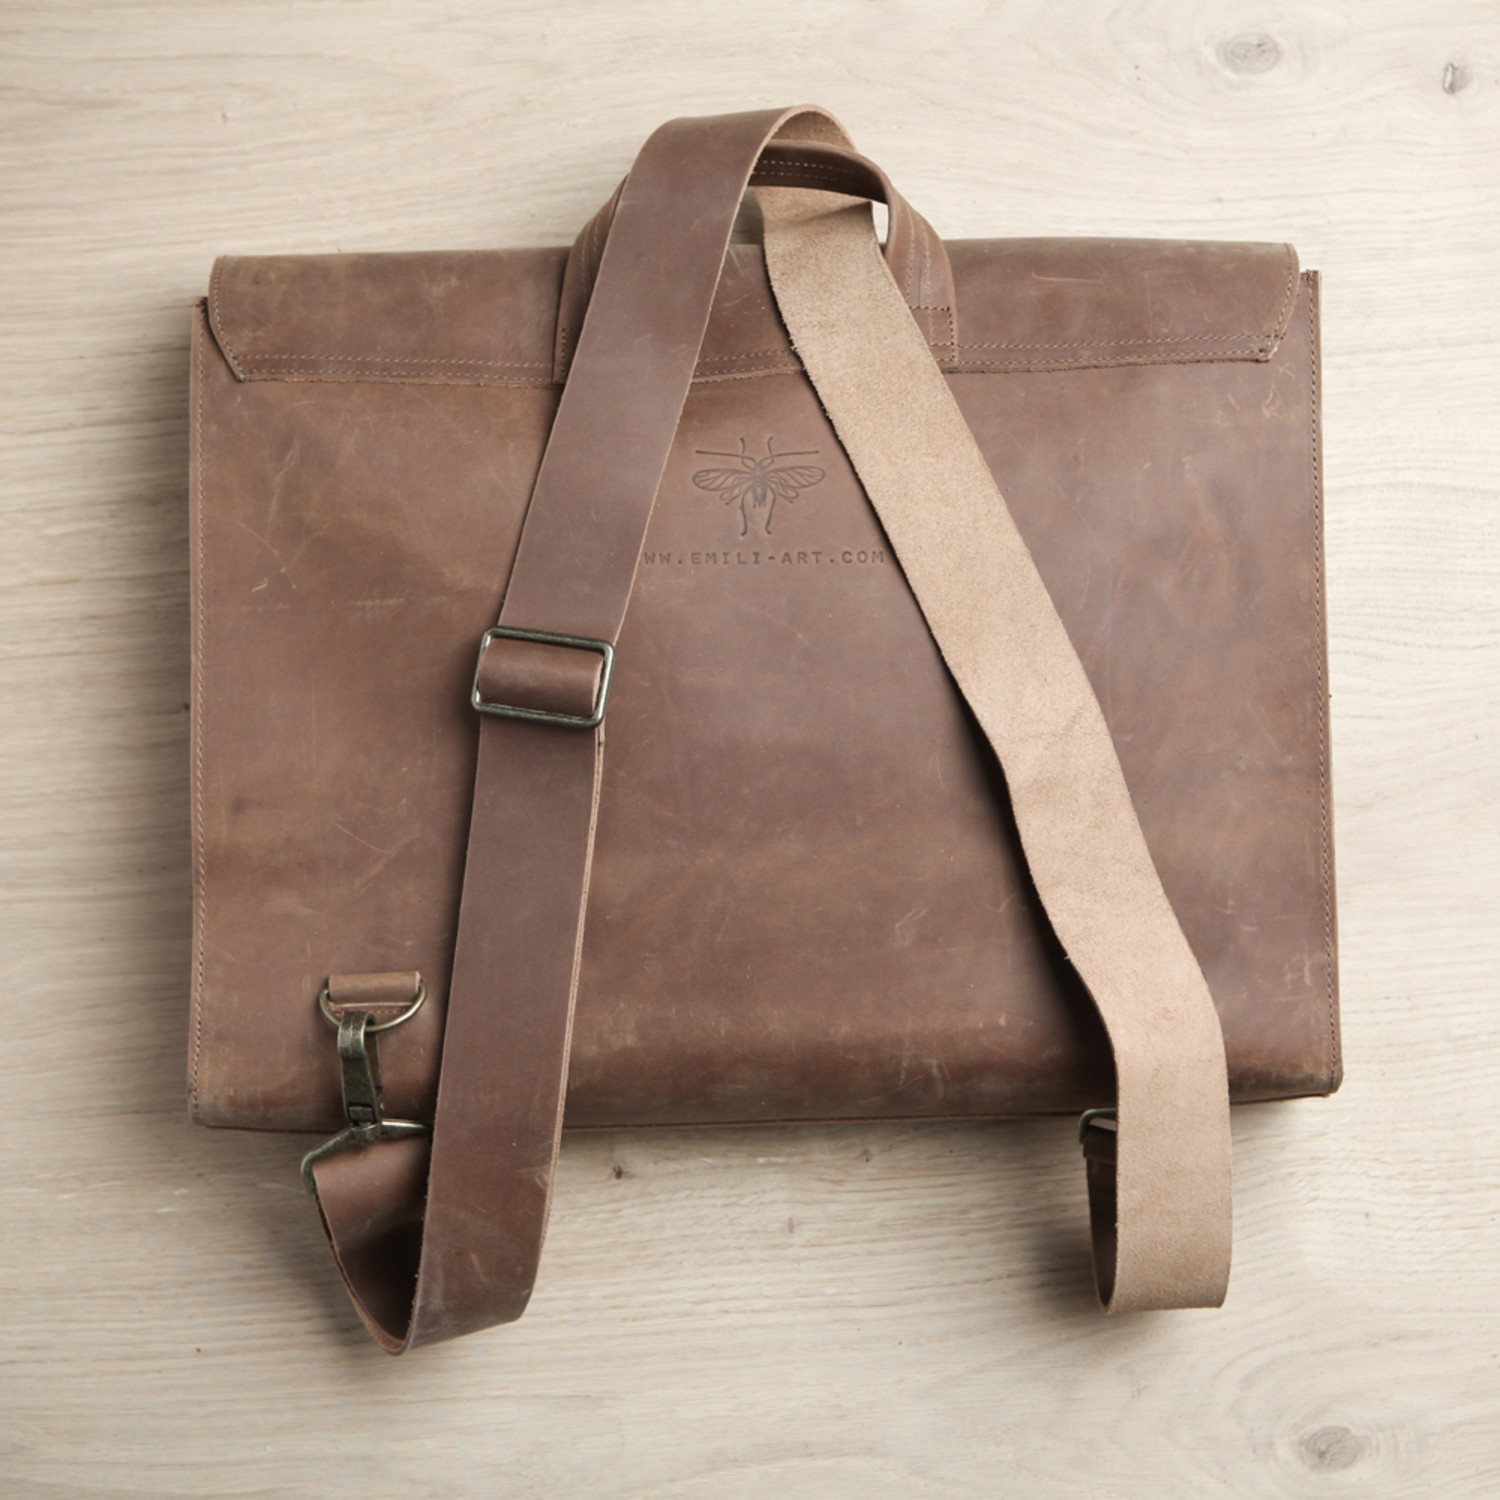 Inviting Modern And Sustainable C House By Studio Arthur: Satchel Bag // Tan Brown